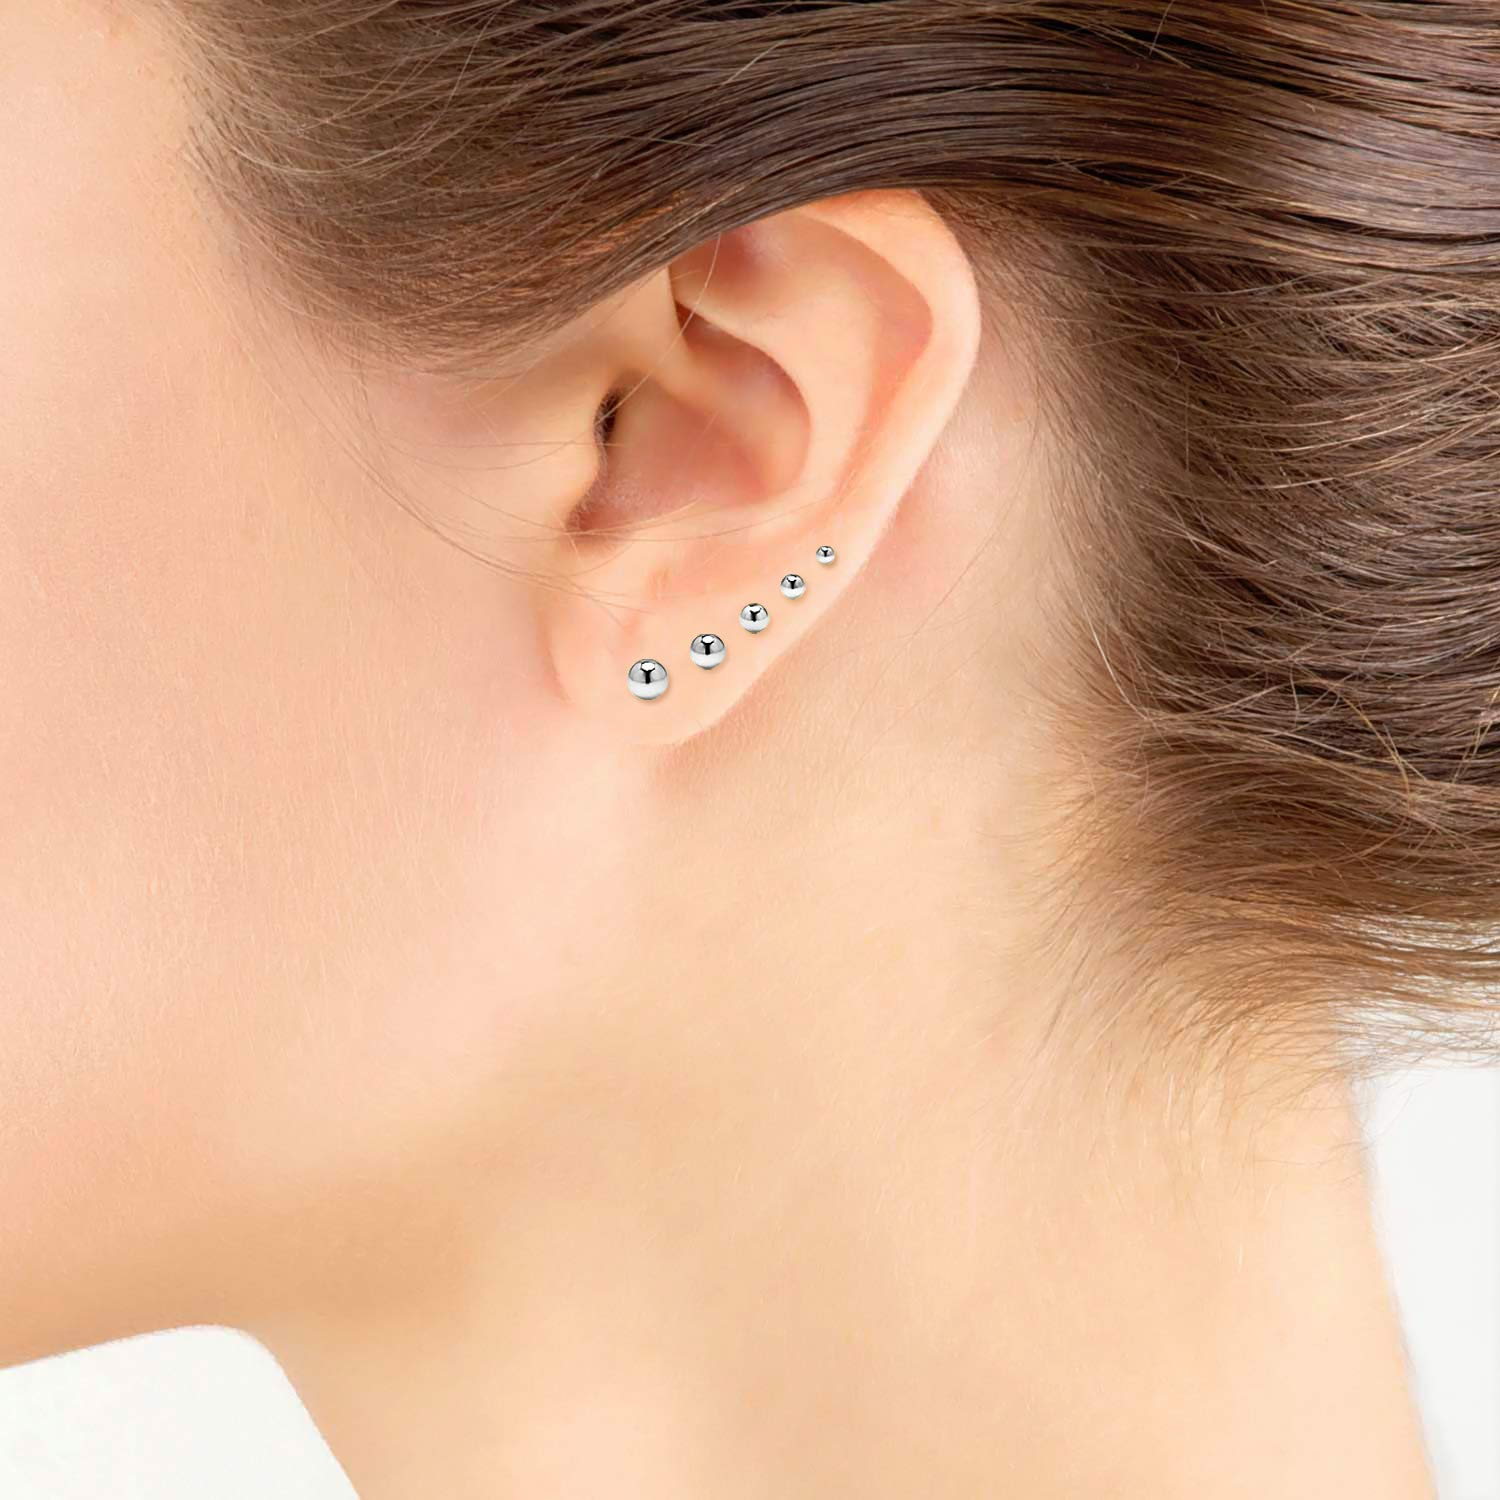 06a9bd5fa Amazon.com: Silverline Jewelry 5 Pair Stainless Steel Round Ball Stud  Earrings Set for Women Men Teen Girls: Jewelry